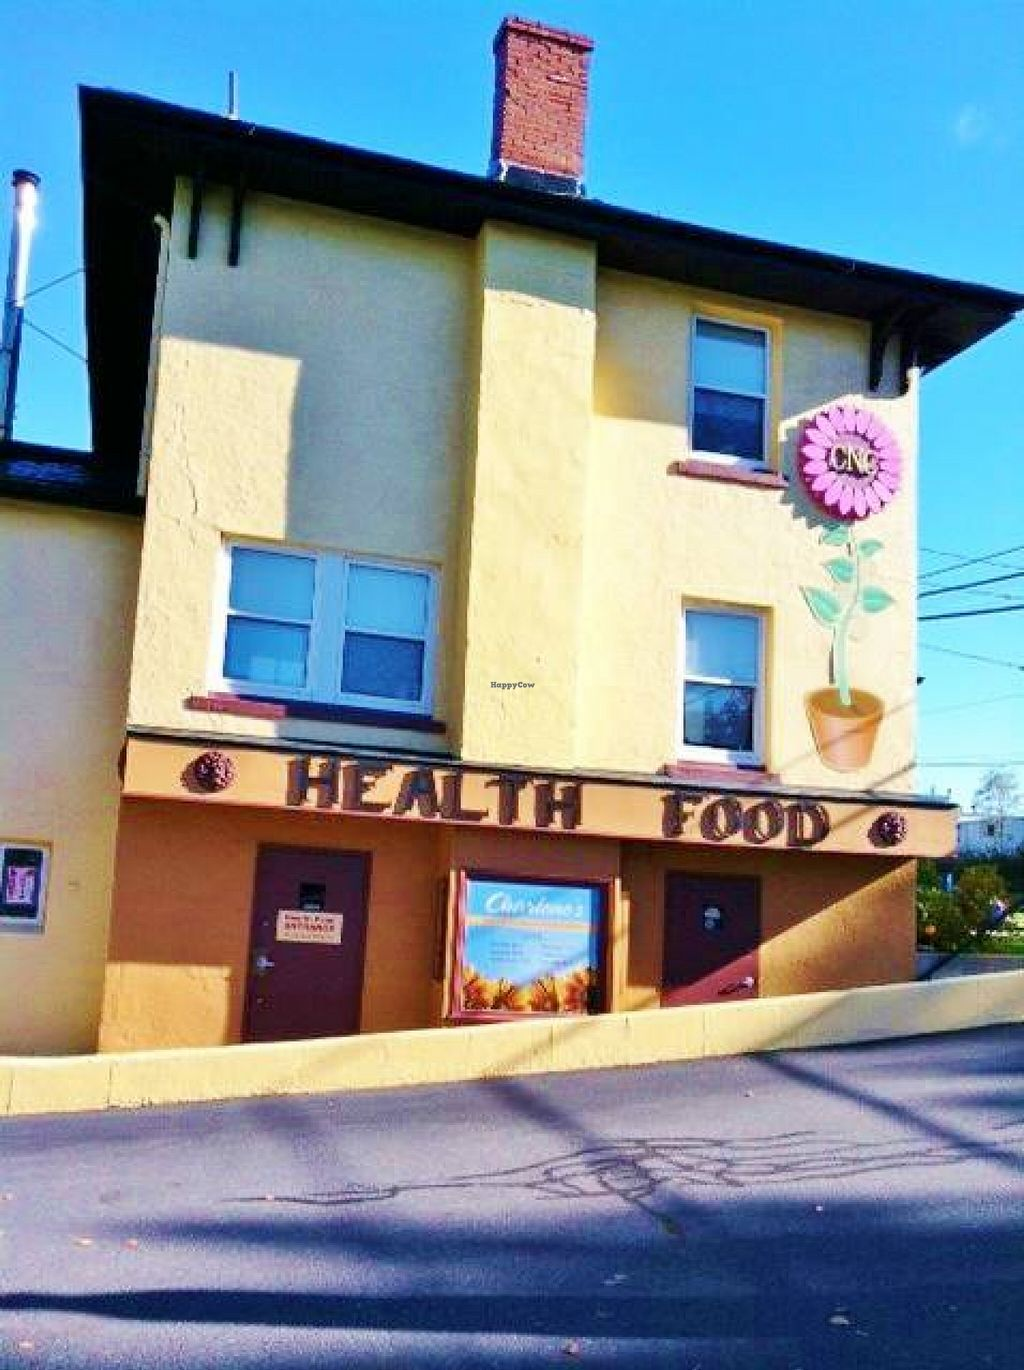 """Photo of Charlene's Nutrition Centre  by <a href=""""/members/profile/QuothTheRaven"""">QuothTheRaven</a> <br/>Outside <br/> April 4, 2016  - <a href='/contact/abuse/image/3613/142737'>Report</a>"""